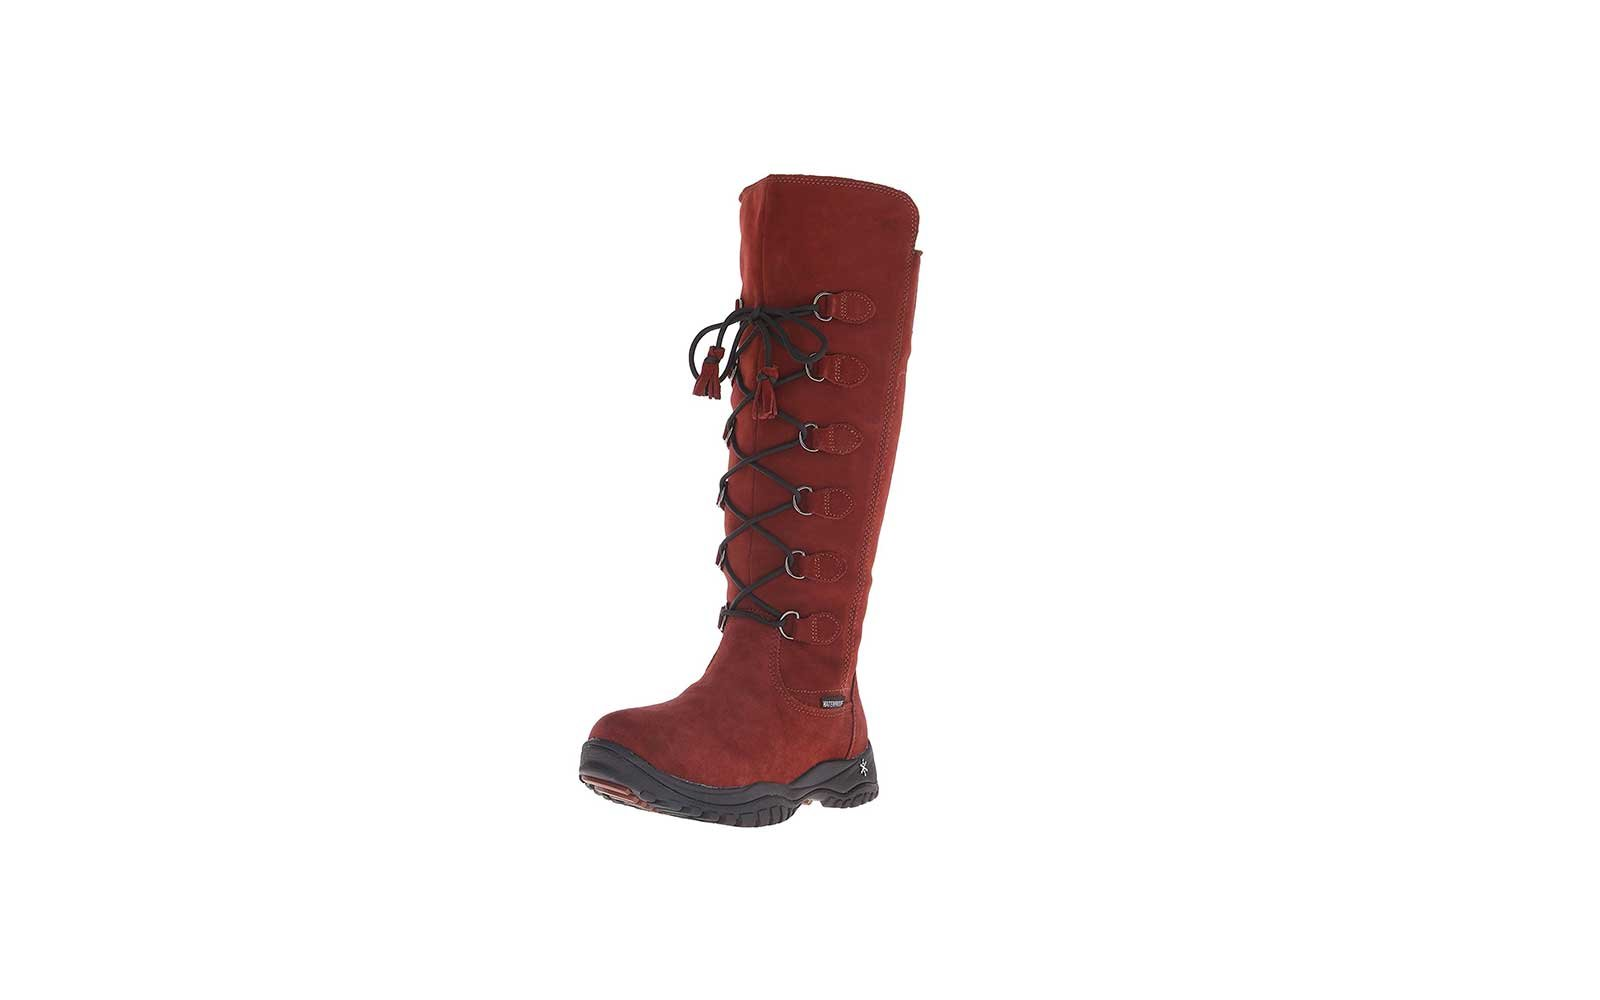 7fef207bfd9 15 Functional and Stylish Snow Boots to Get You Through This Winter ...